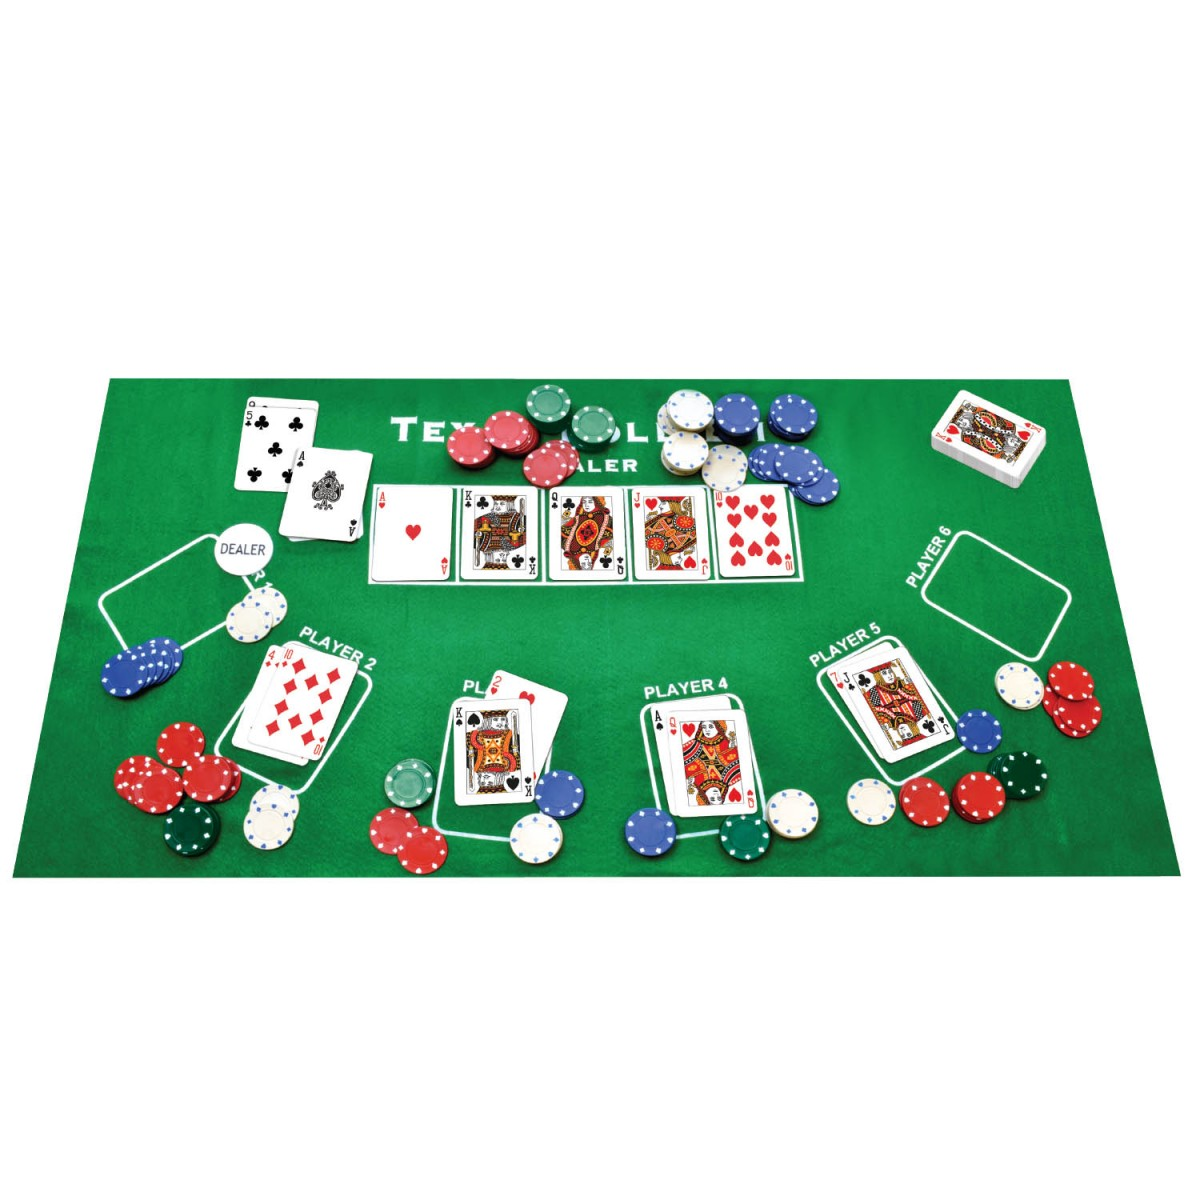 Poker croupier hire